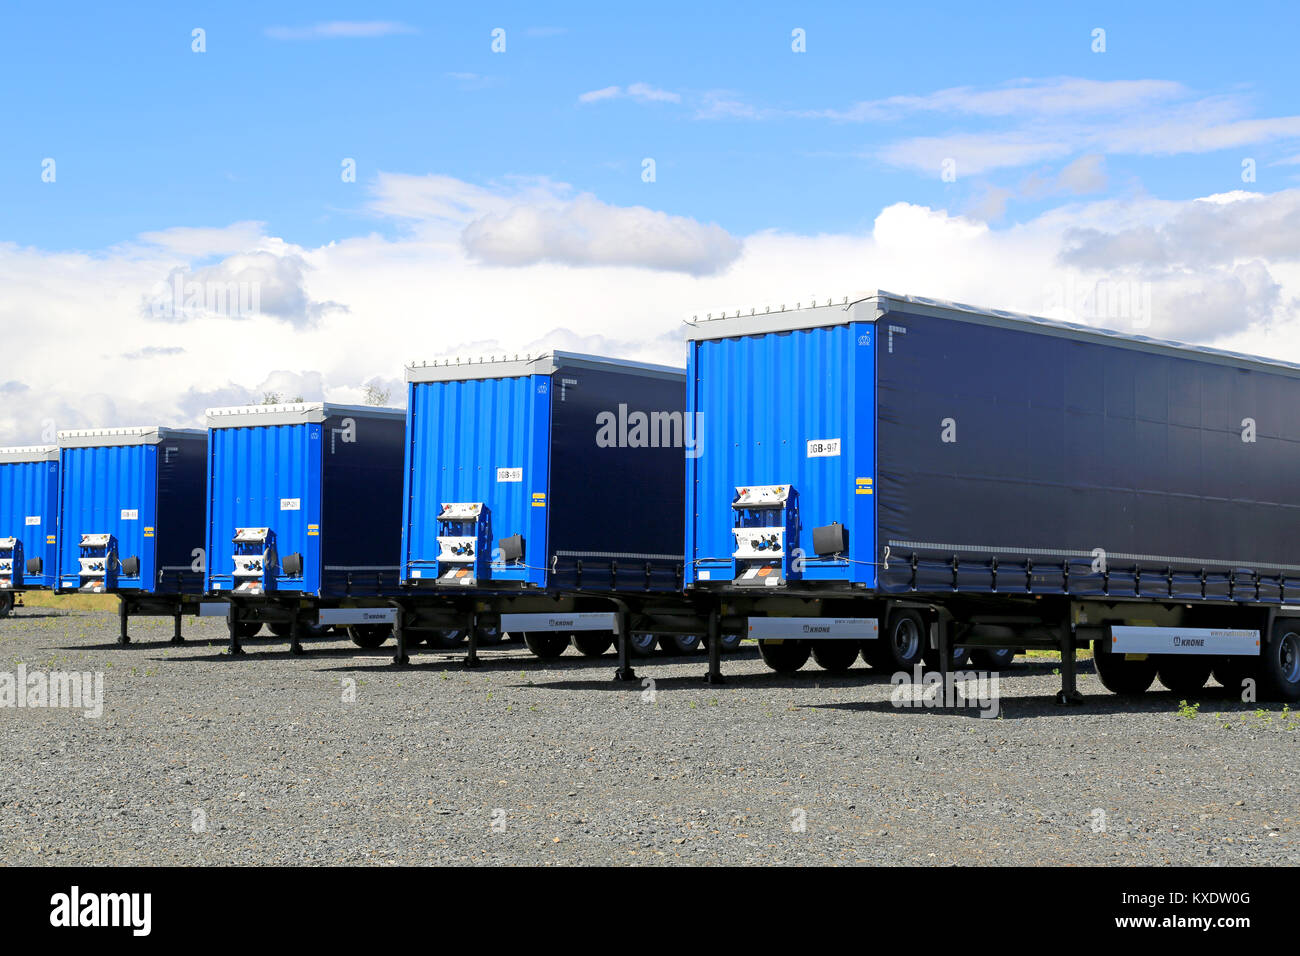 FORSSA, FINLAND - AUGUST 16, 2014: Row of trailers on a yard. The top 5 export destinations of Finland are Sweden, - Stock Image